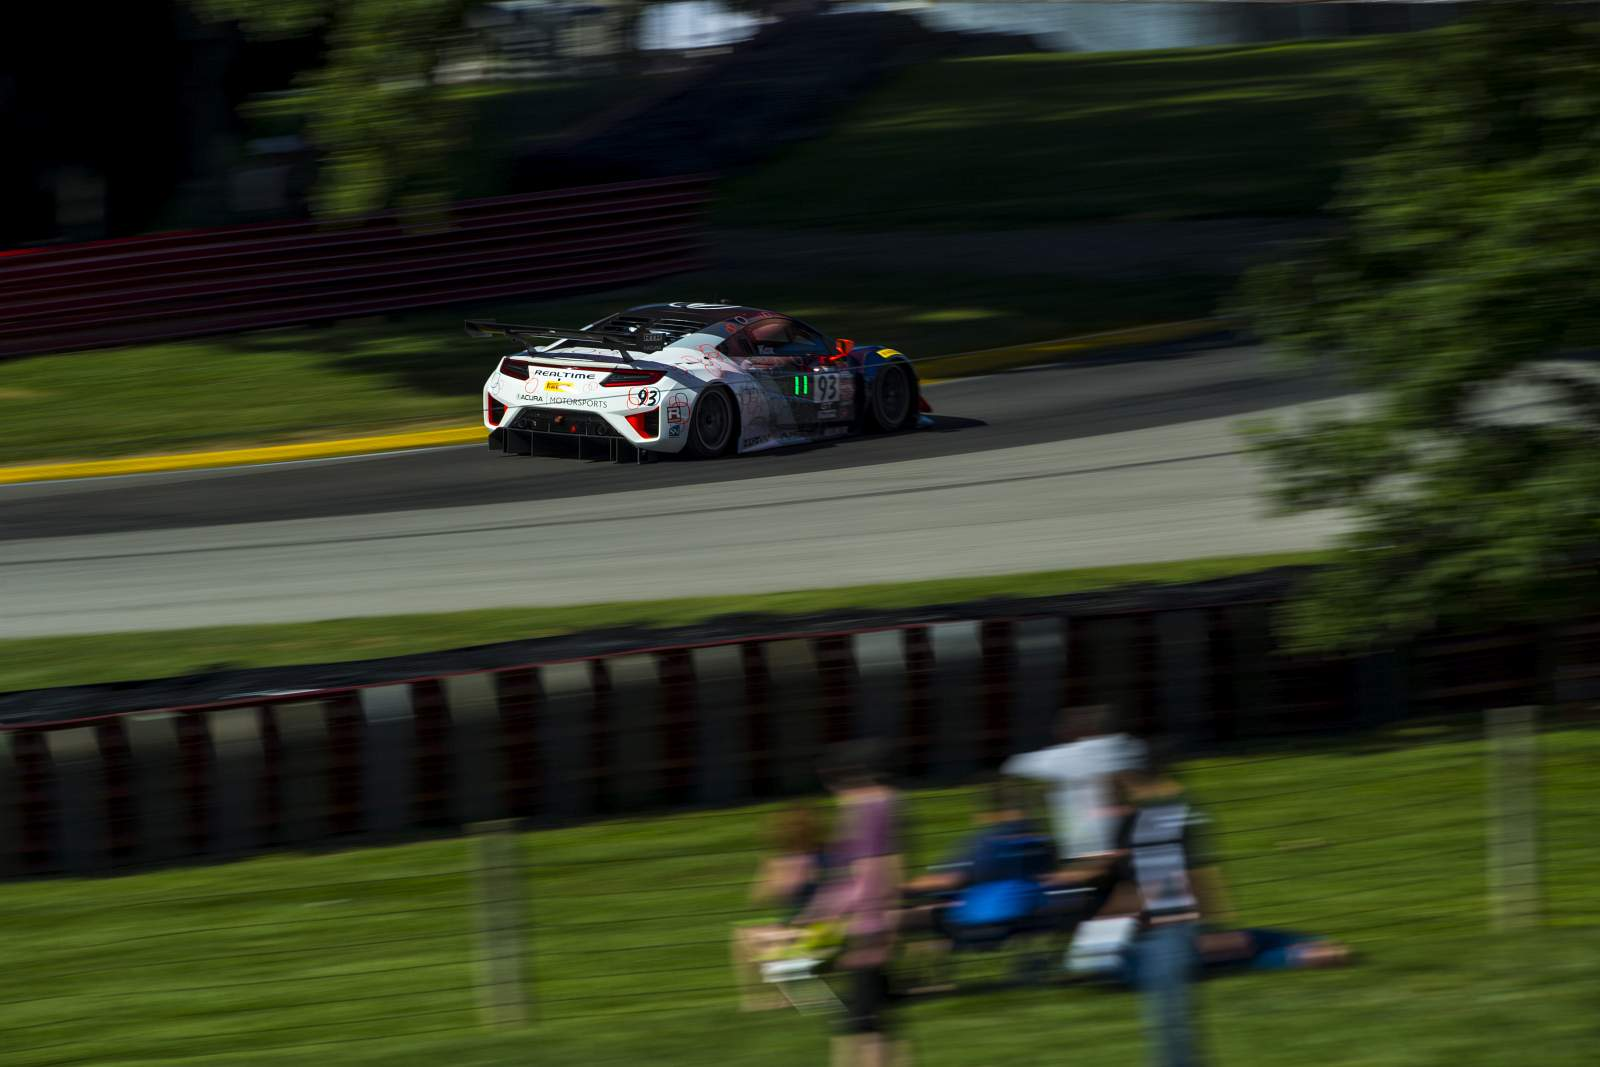 peter-kox-realtime-racing-pirelli-world-challenge-mid-ohio-60